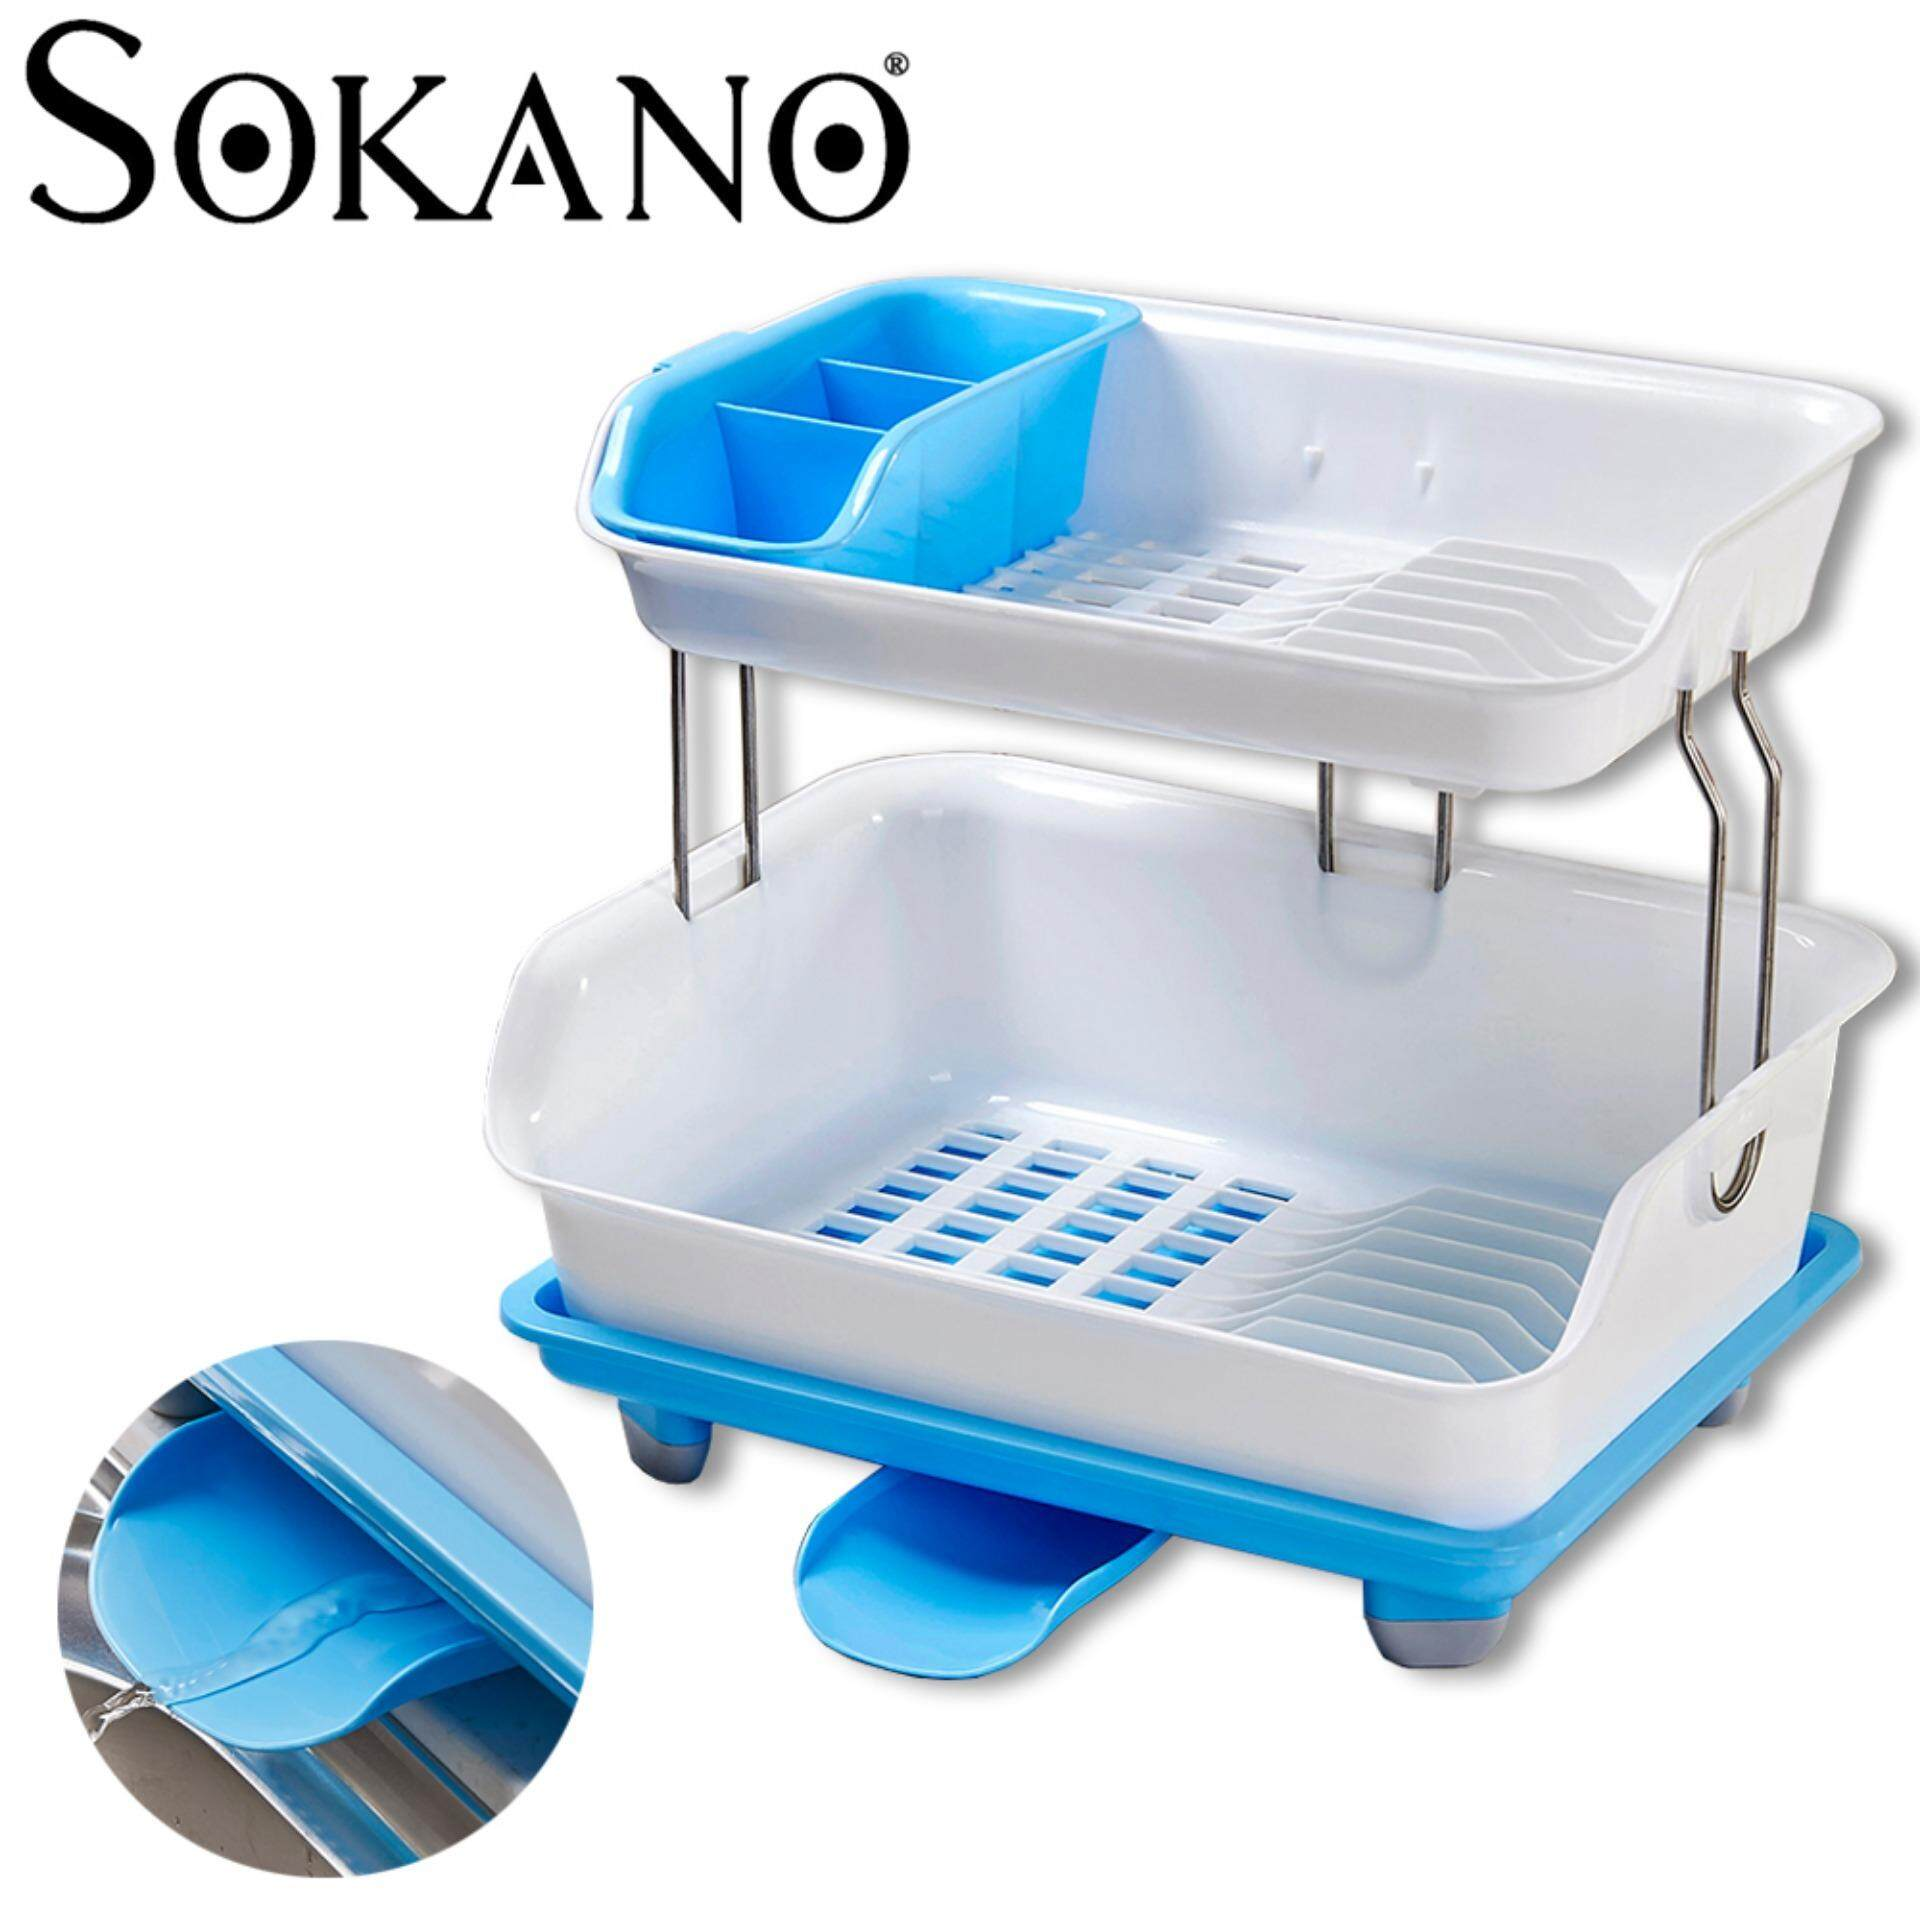 SOKANO XL Size Premium Double Layer Drain Dishes Kitchen Dapur Storage Rack Rak Pinggan - Blue